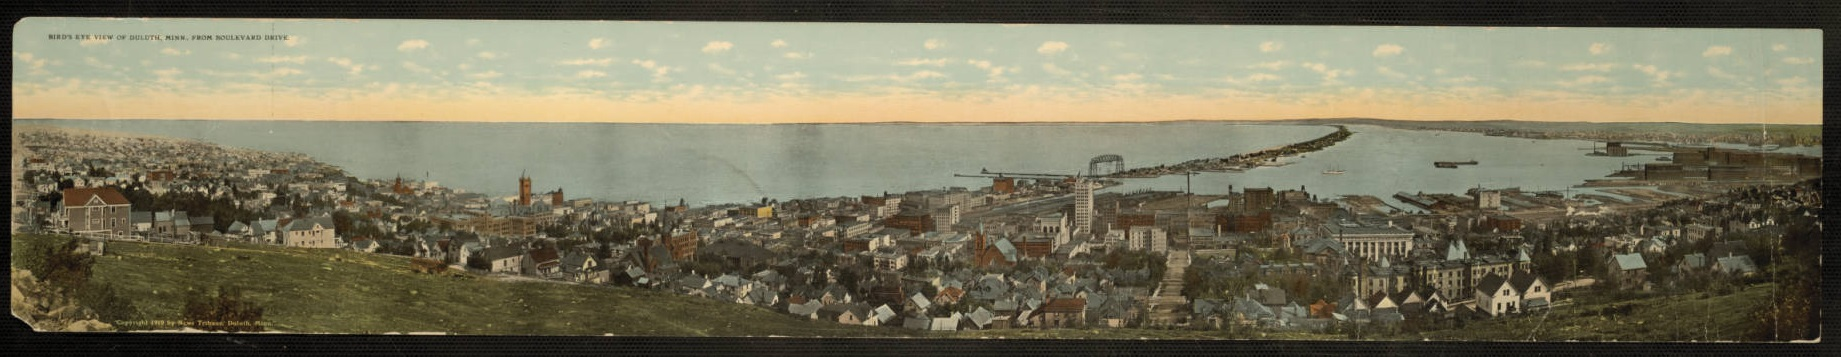 Bird's Eye View of Duluth, Minnesota, circa 1925